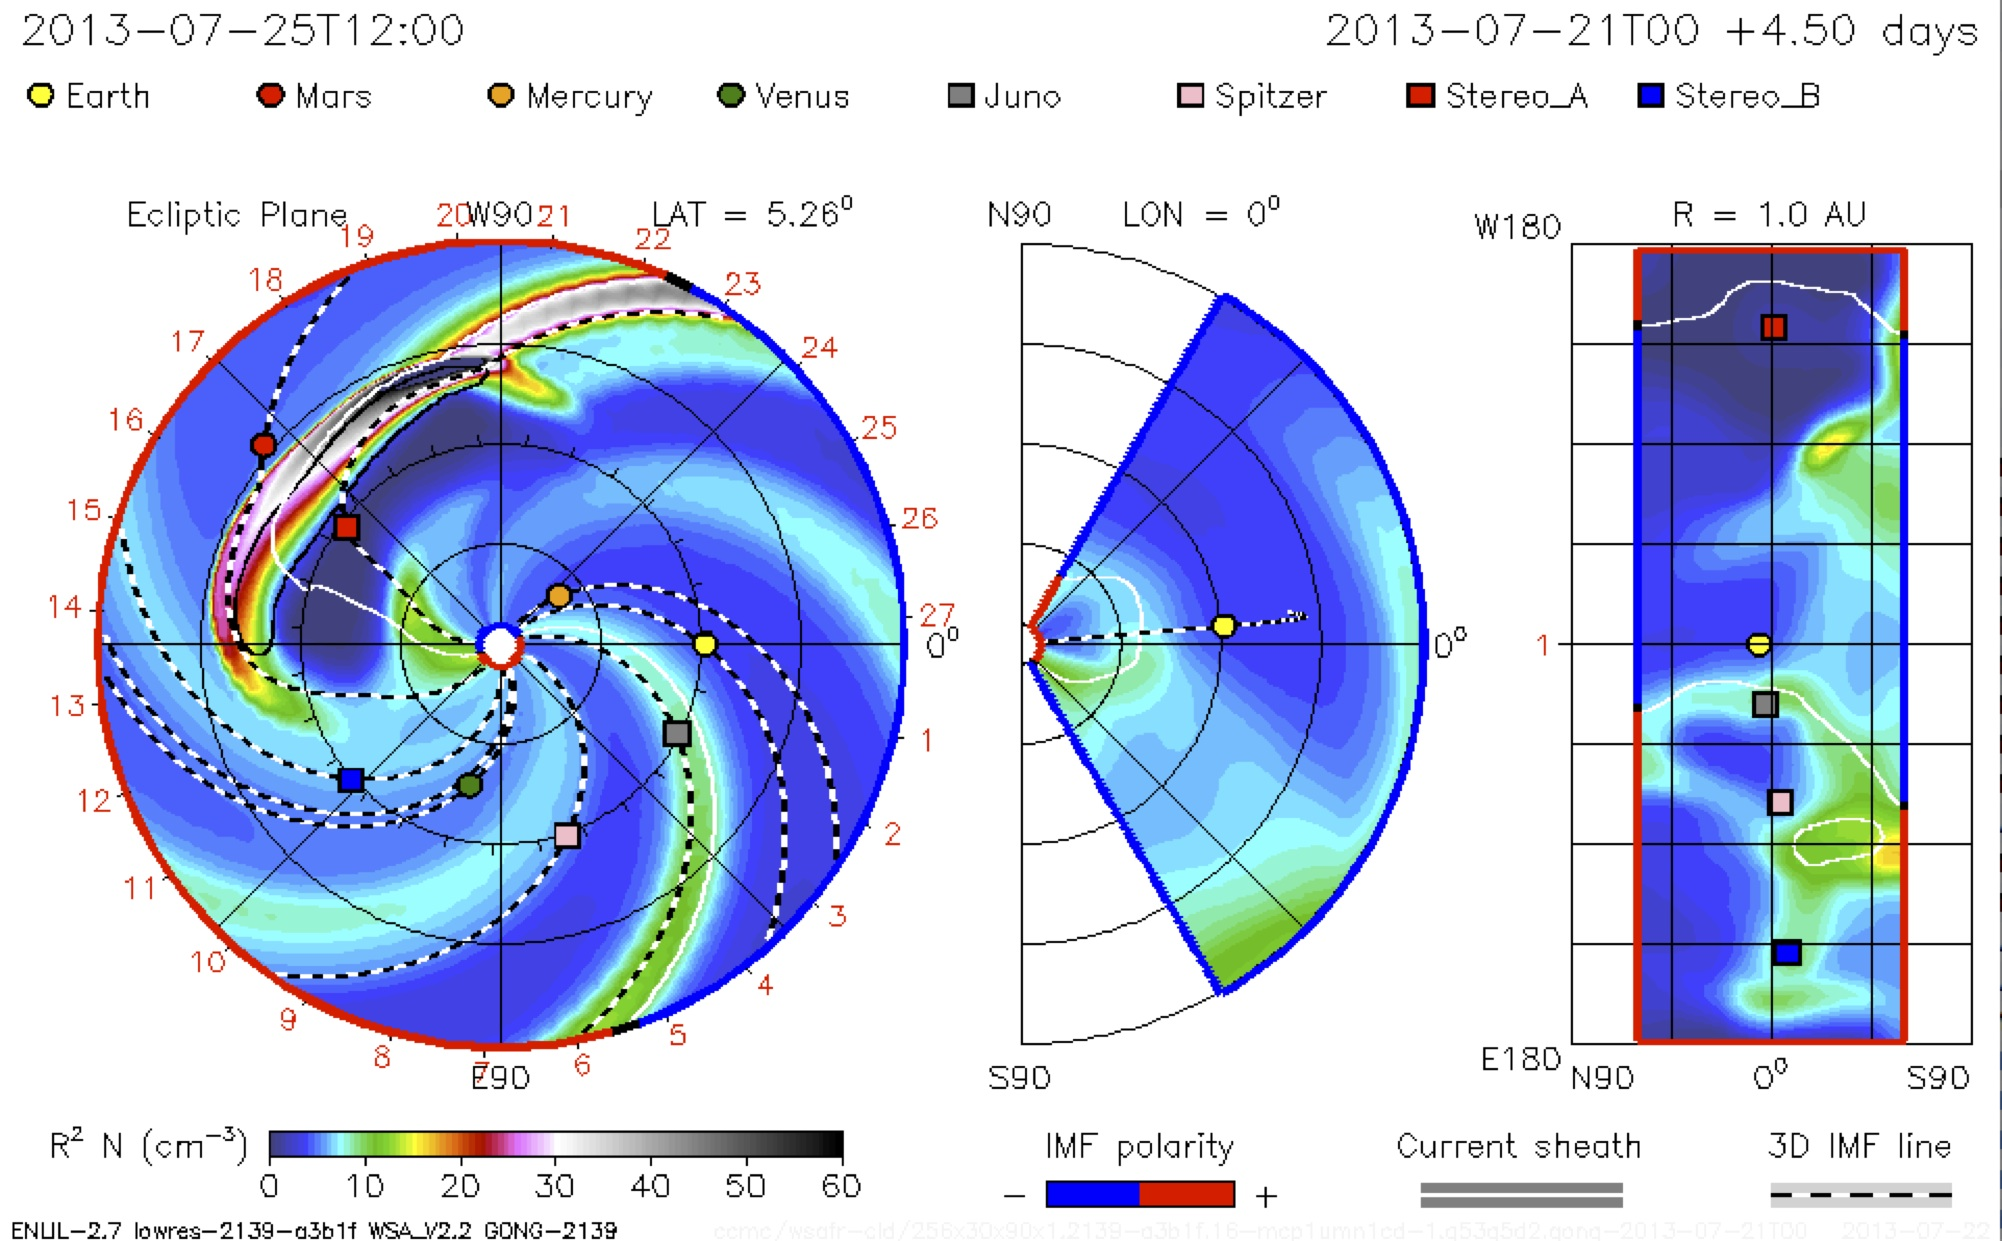 Image from model predicting CME trajectory through the inner solar system